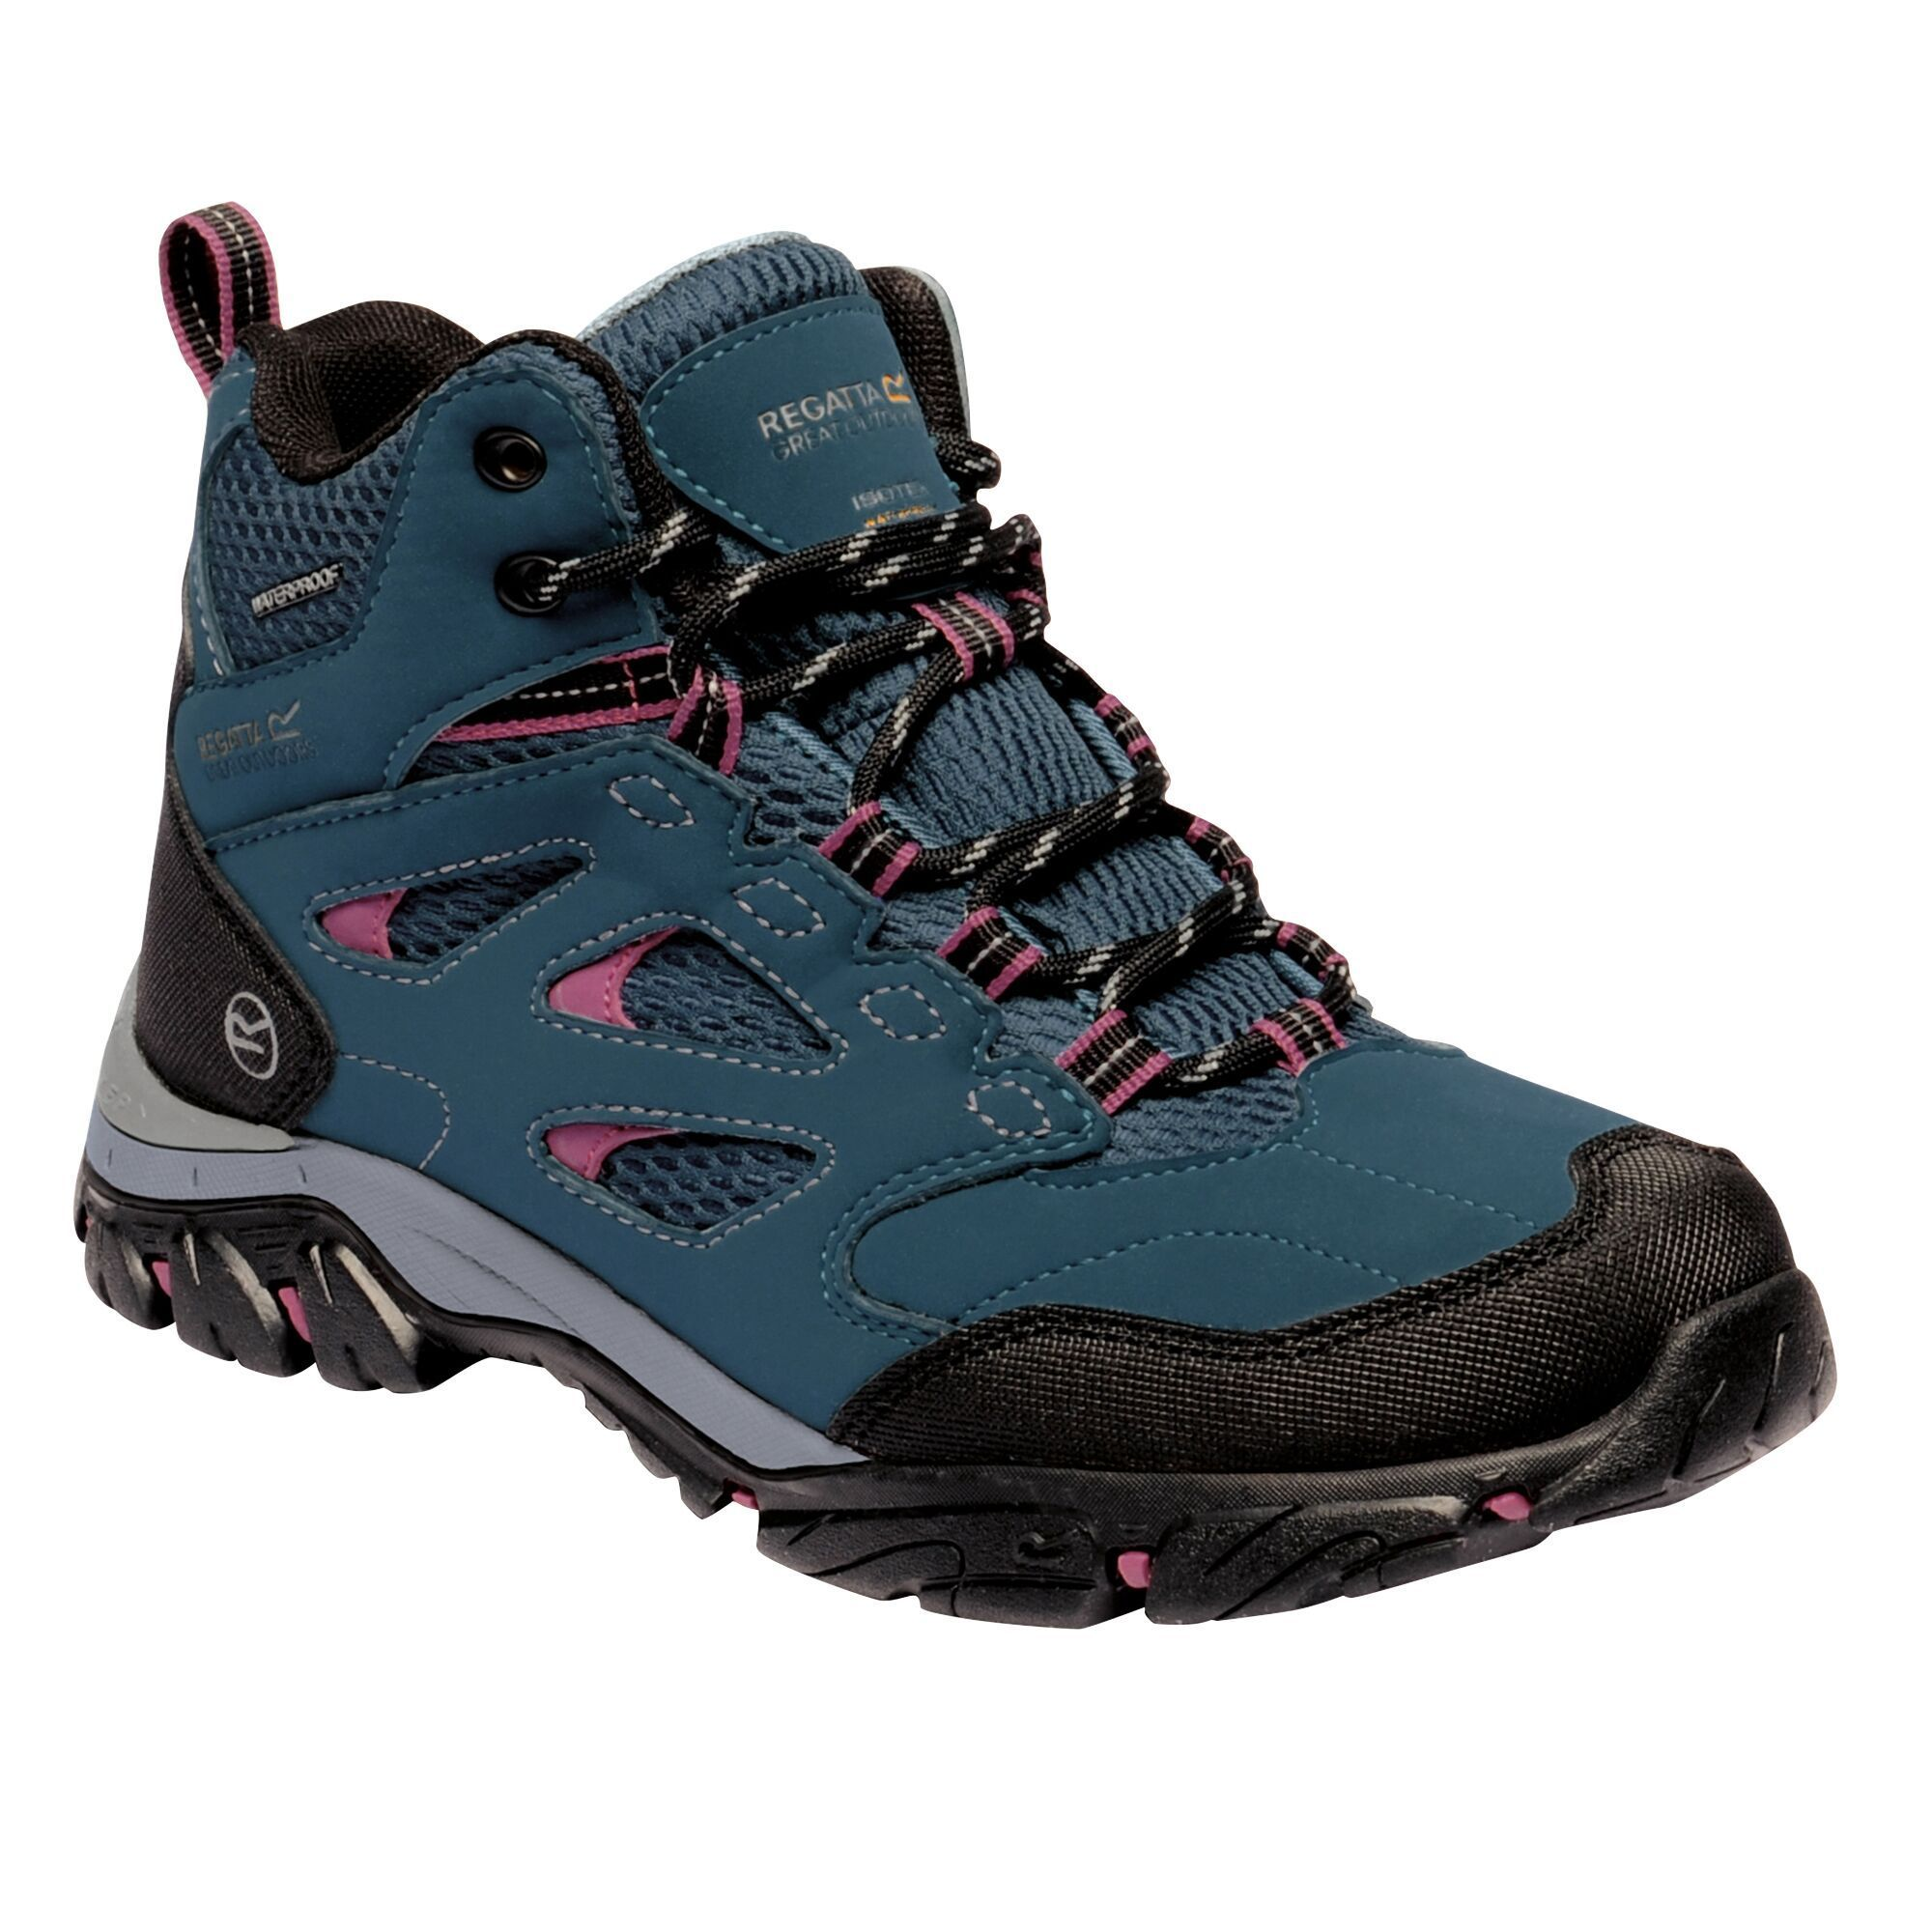 Regatta Womens/Ladies Holcombe IEP Mid Hiking Boots (Moroccan Blue/Red Violet)